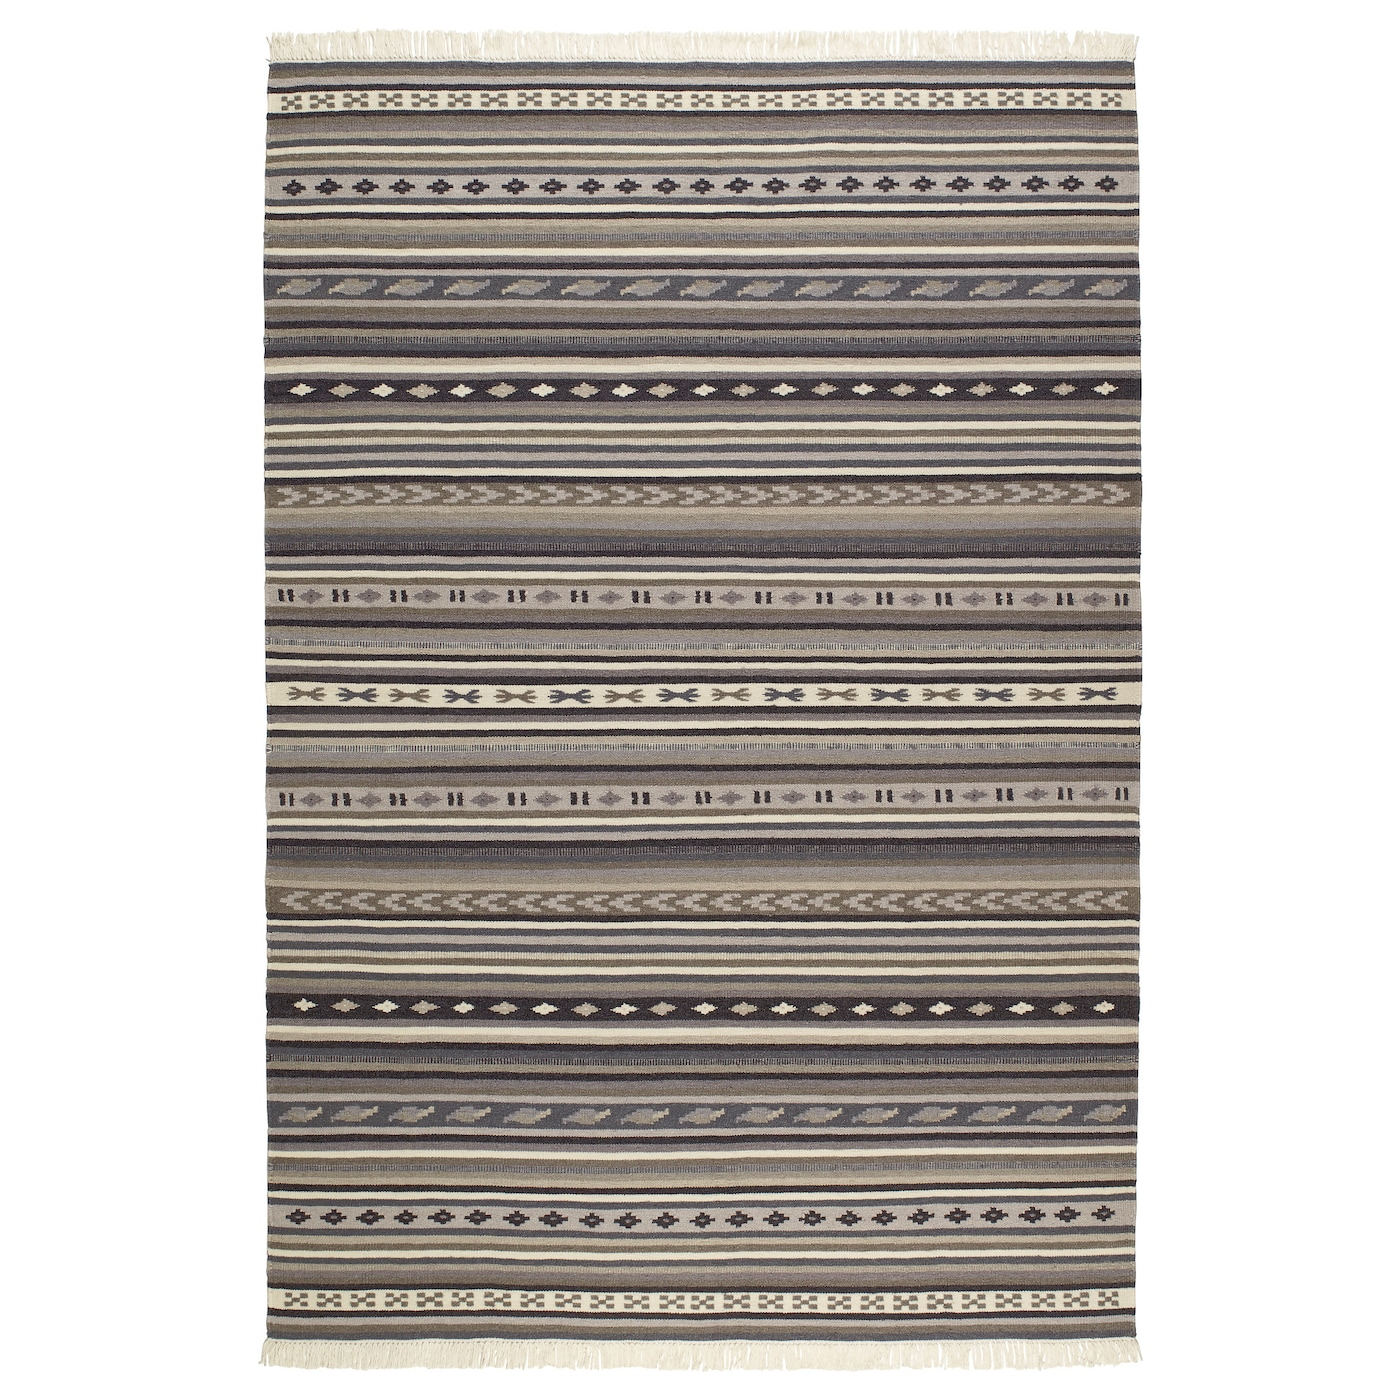 IKEA KATTRUP rug, flatwoven Easy to vacuum thanks to its flat surface.